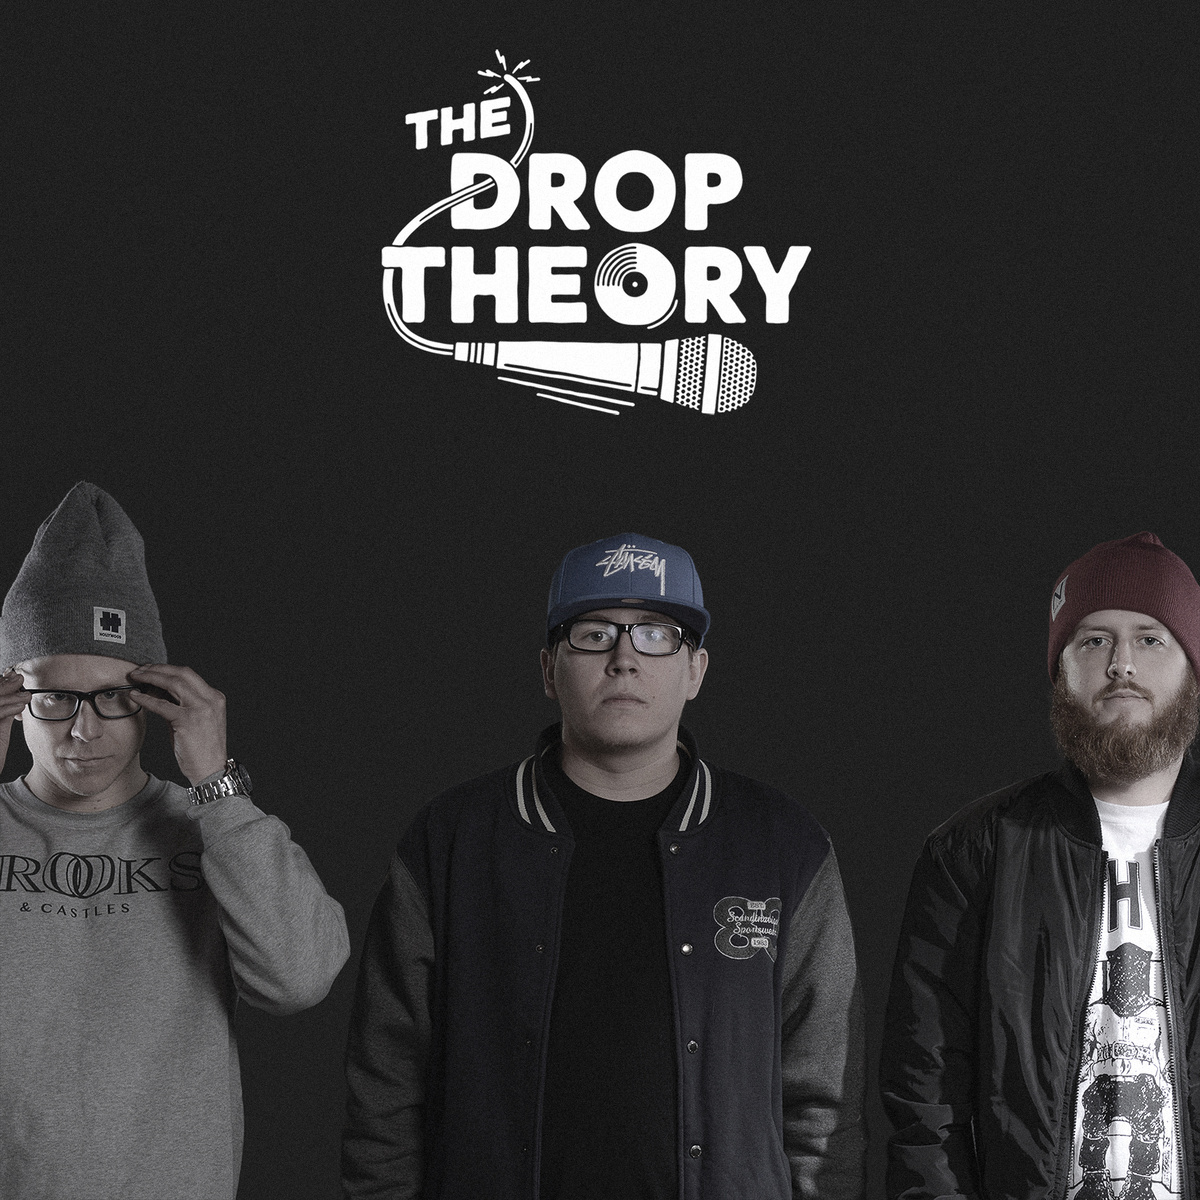 The_drop_theory_presentan_the_drop_theory_ep